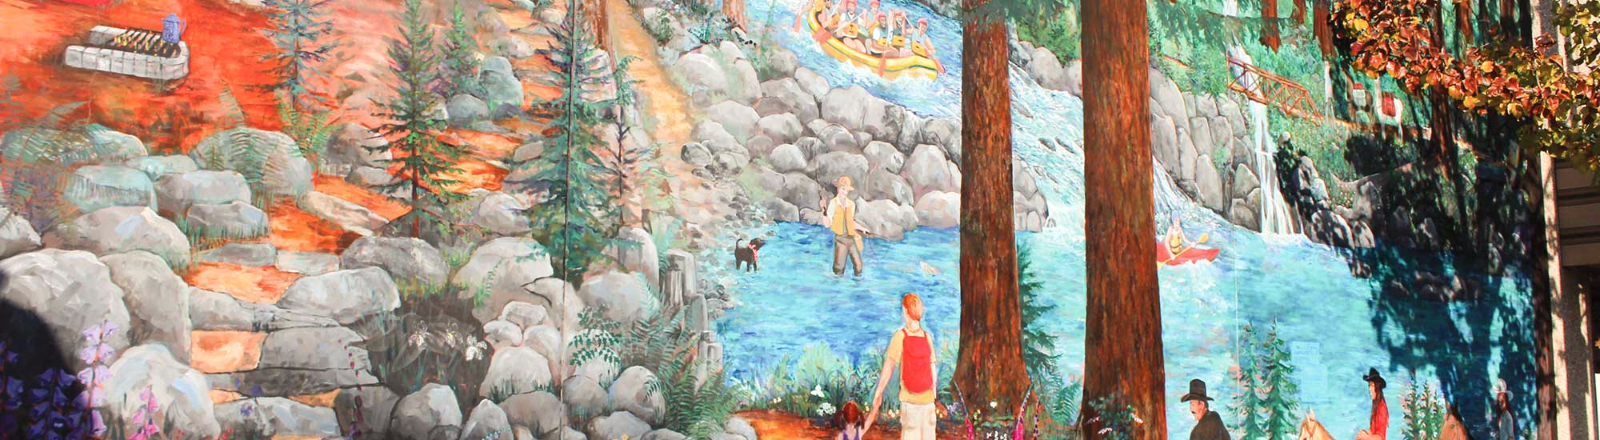 Colorful mural depicting outdoor activities of horseback riding, hiking, fishing and Clackamas River whitewater rafting.